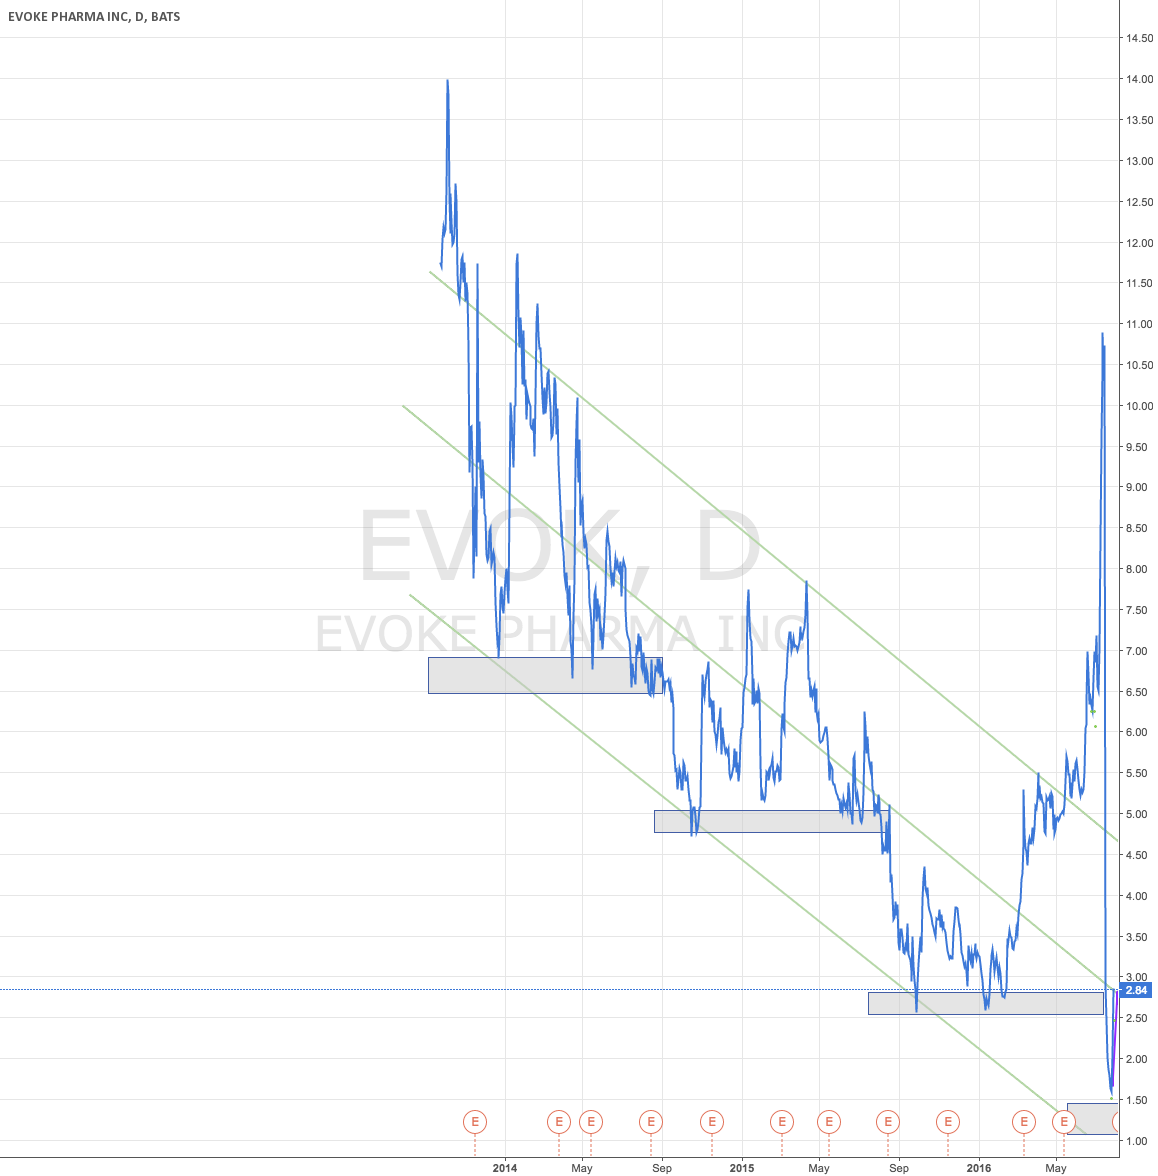 EVOK Trend Downwards?